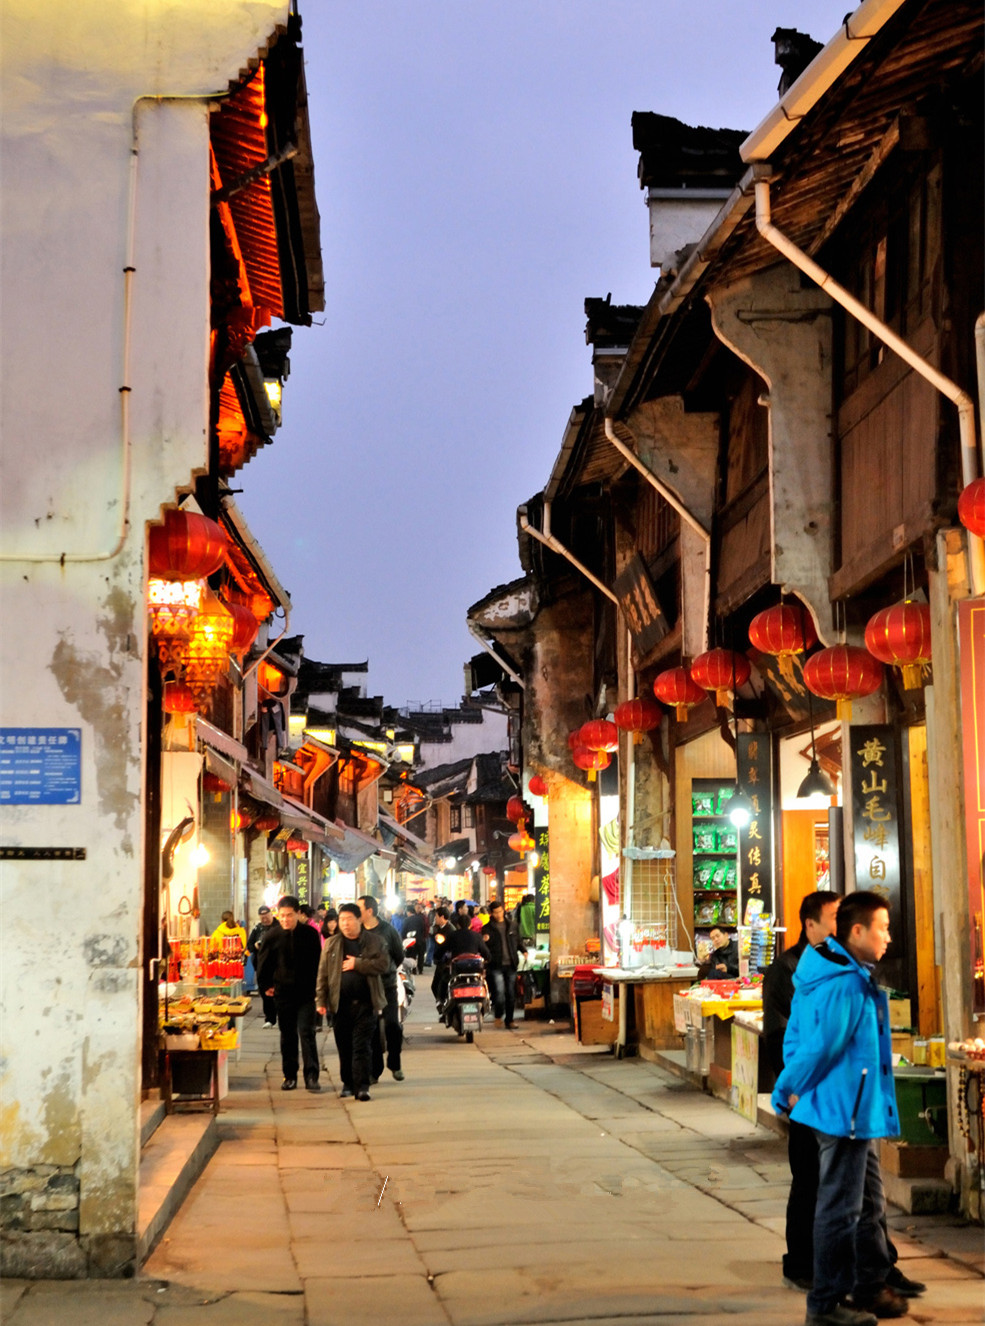 The Tunxi Old Street at night